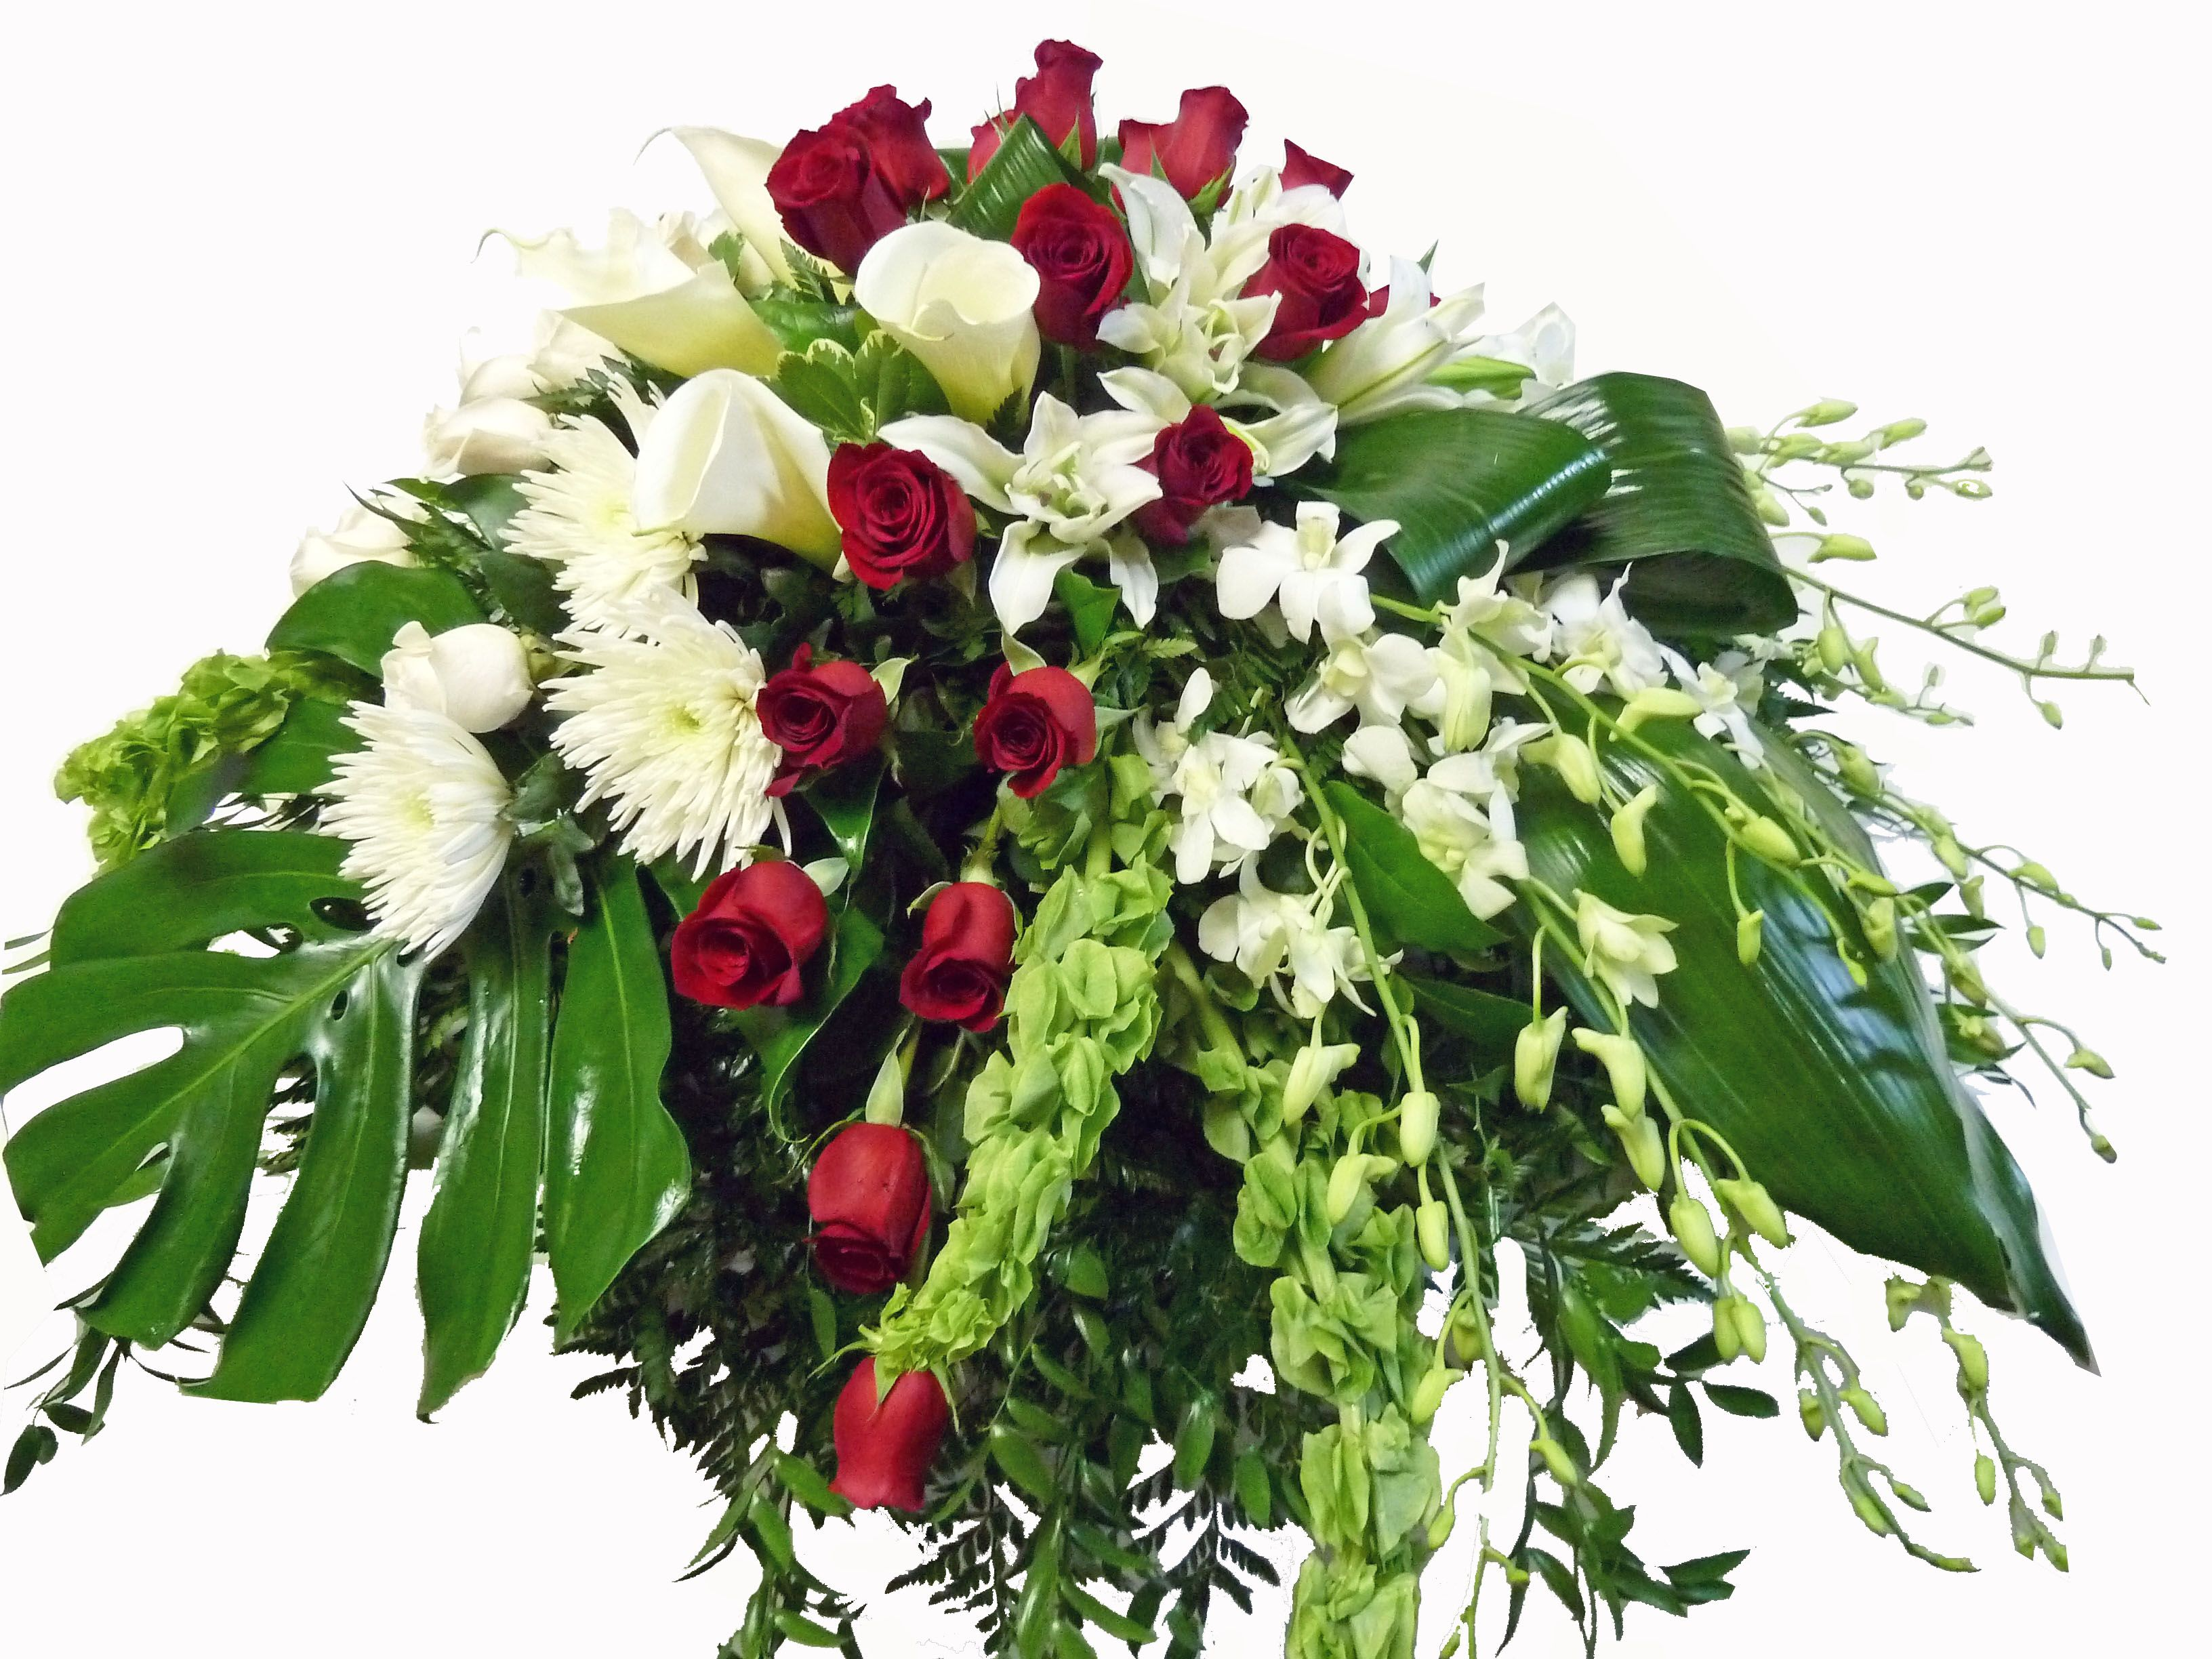 Modern styled casket spray for a funeral. The red and